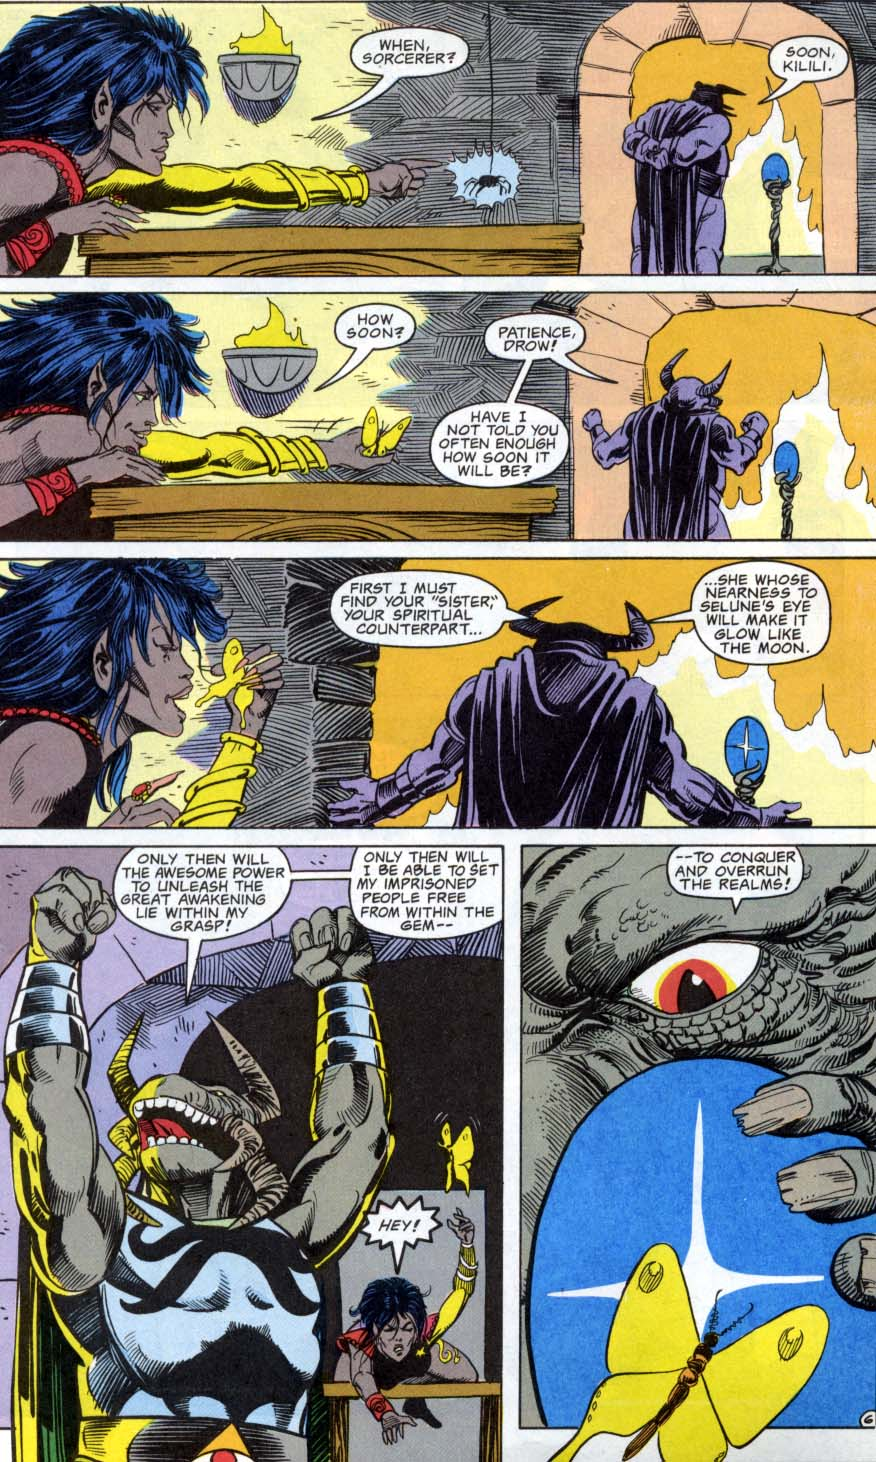 Read online Advanced Dungeons & Dragons comic -  Issue #3 - 6